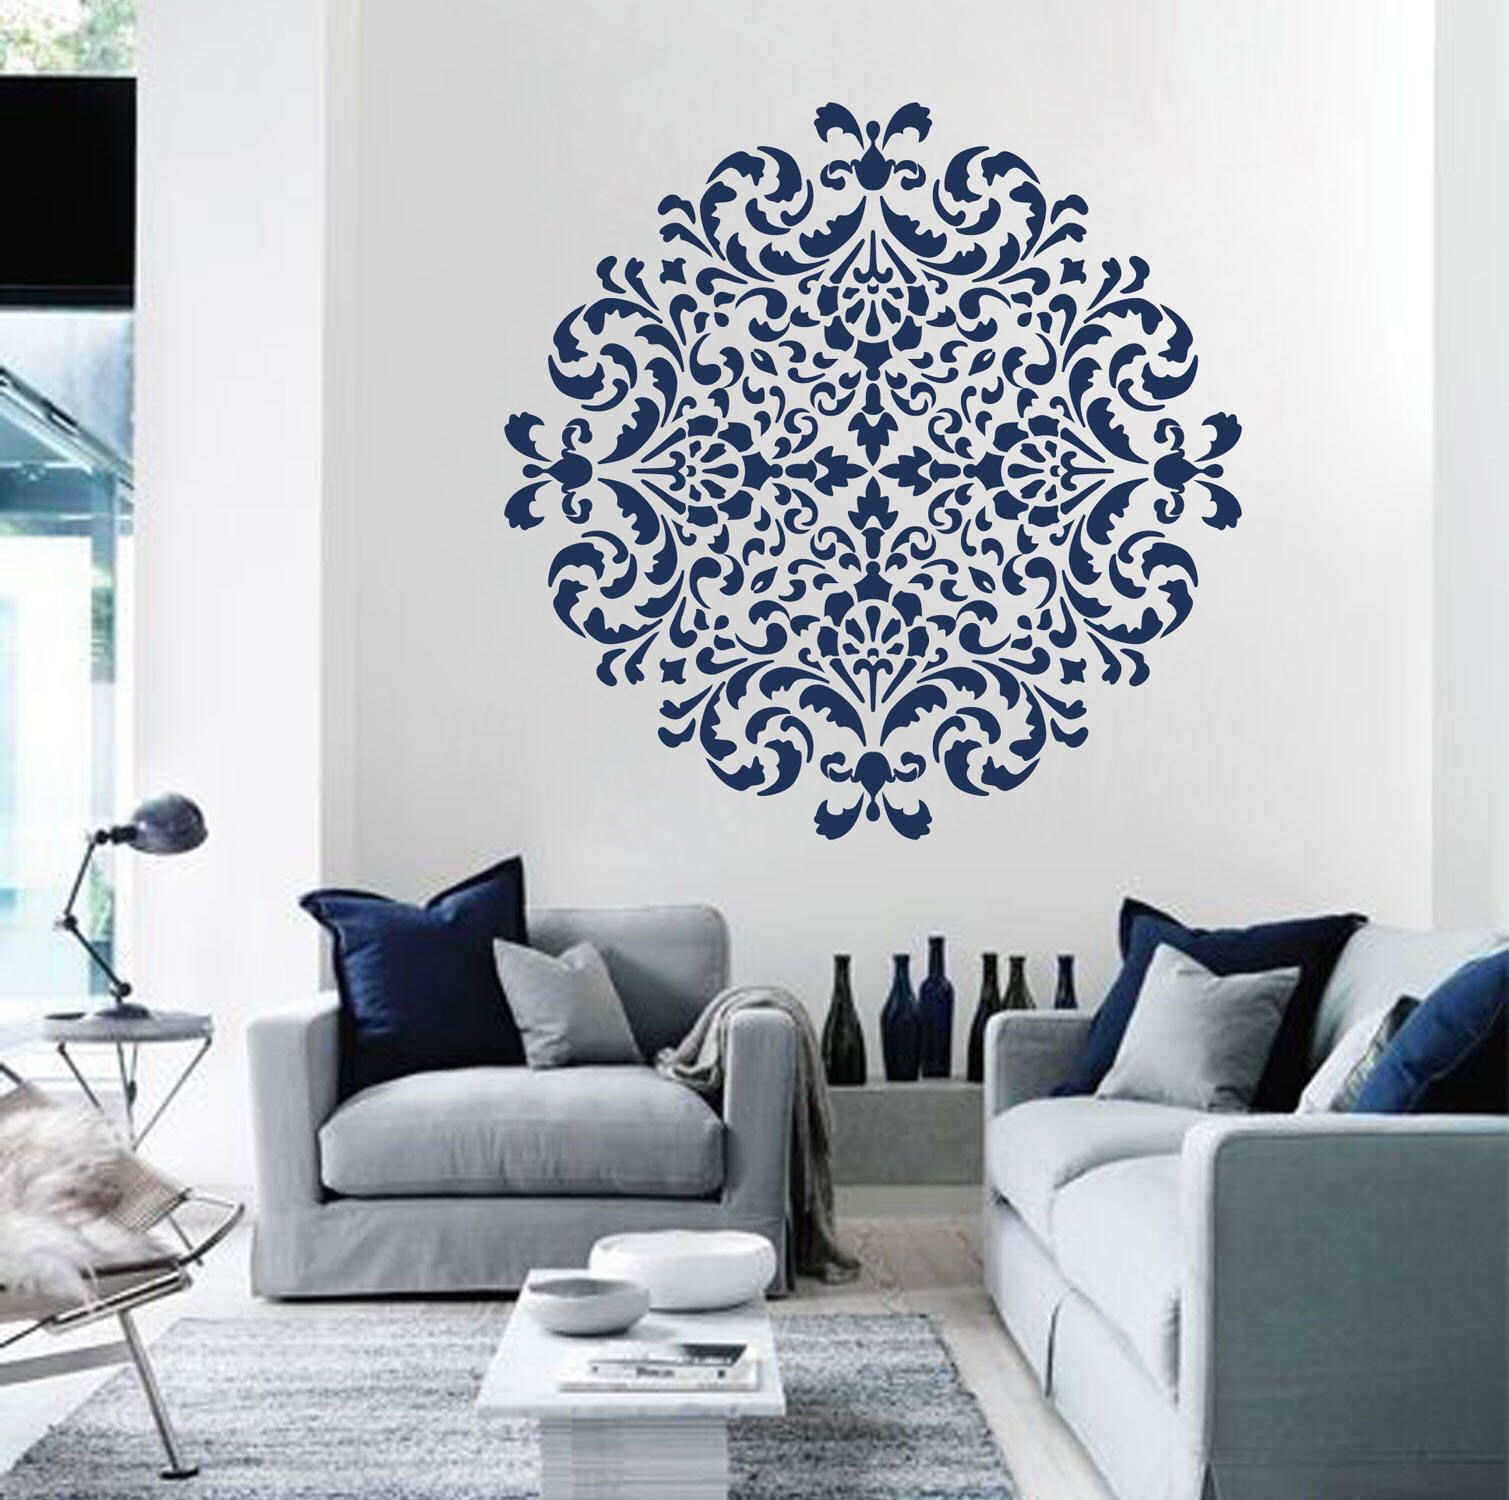 Wall stencil medallion mandala pattern for diy geometric mandala mandala moroccan stencil moroccan pattern for diy wall decor modern home stencils mandala wall art yoga amipublicfo Images